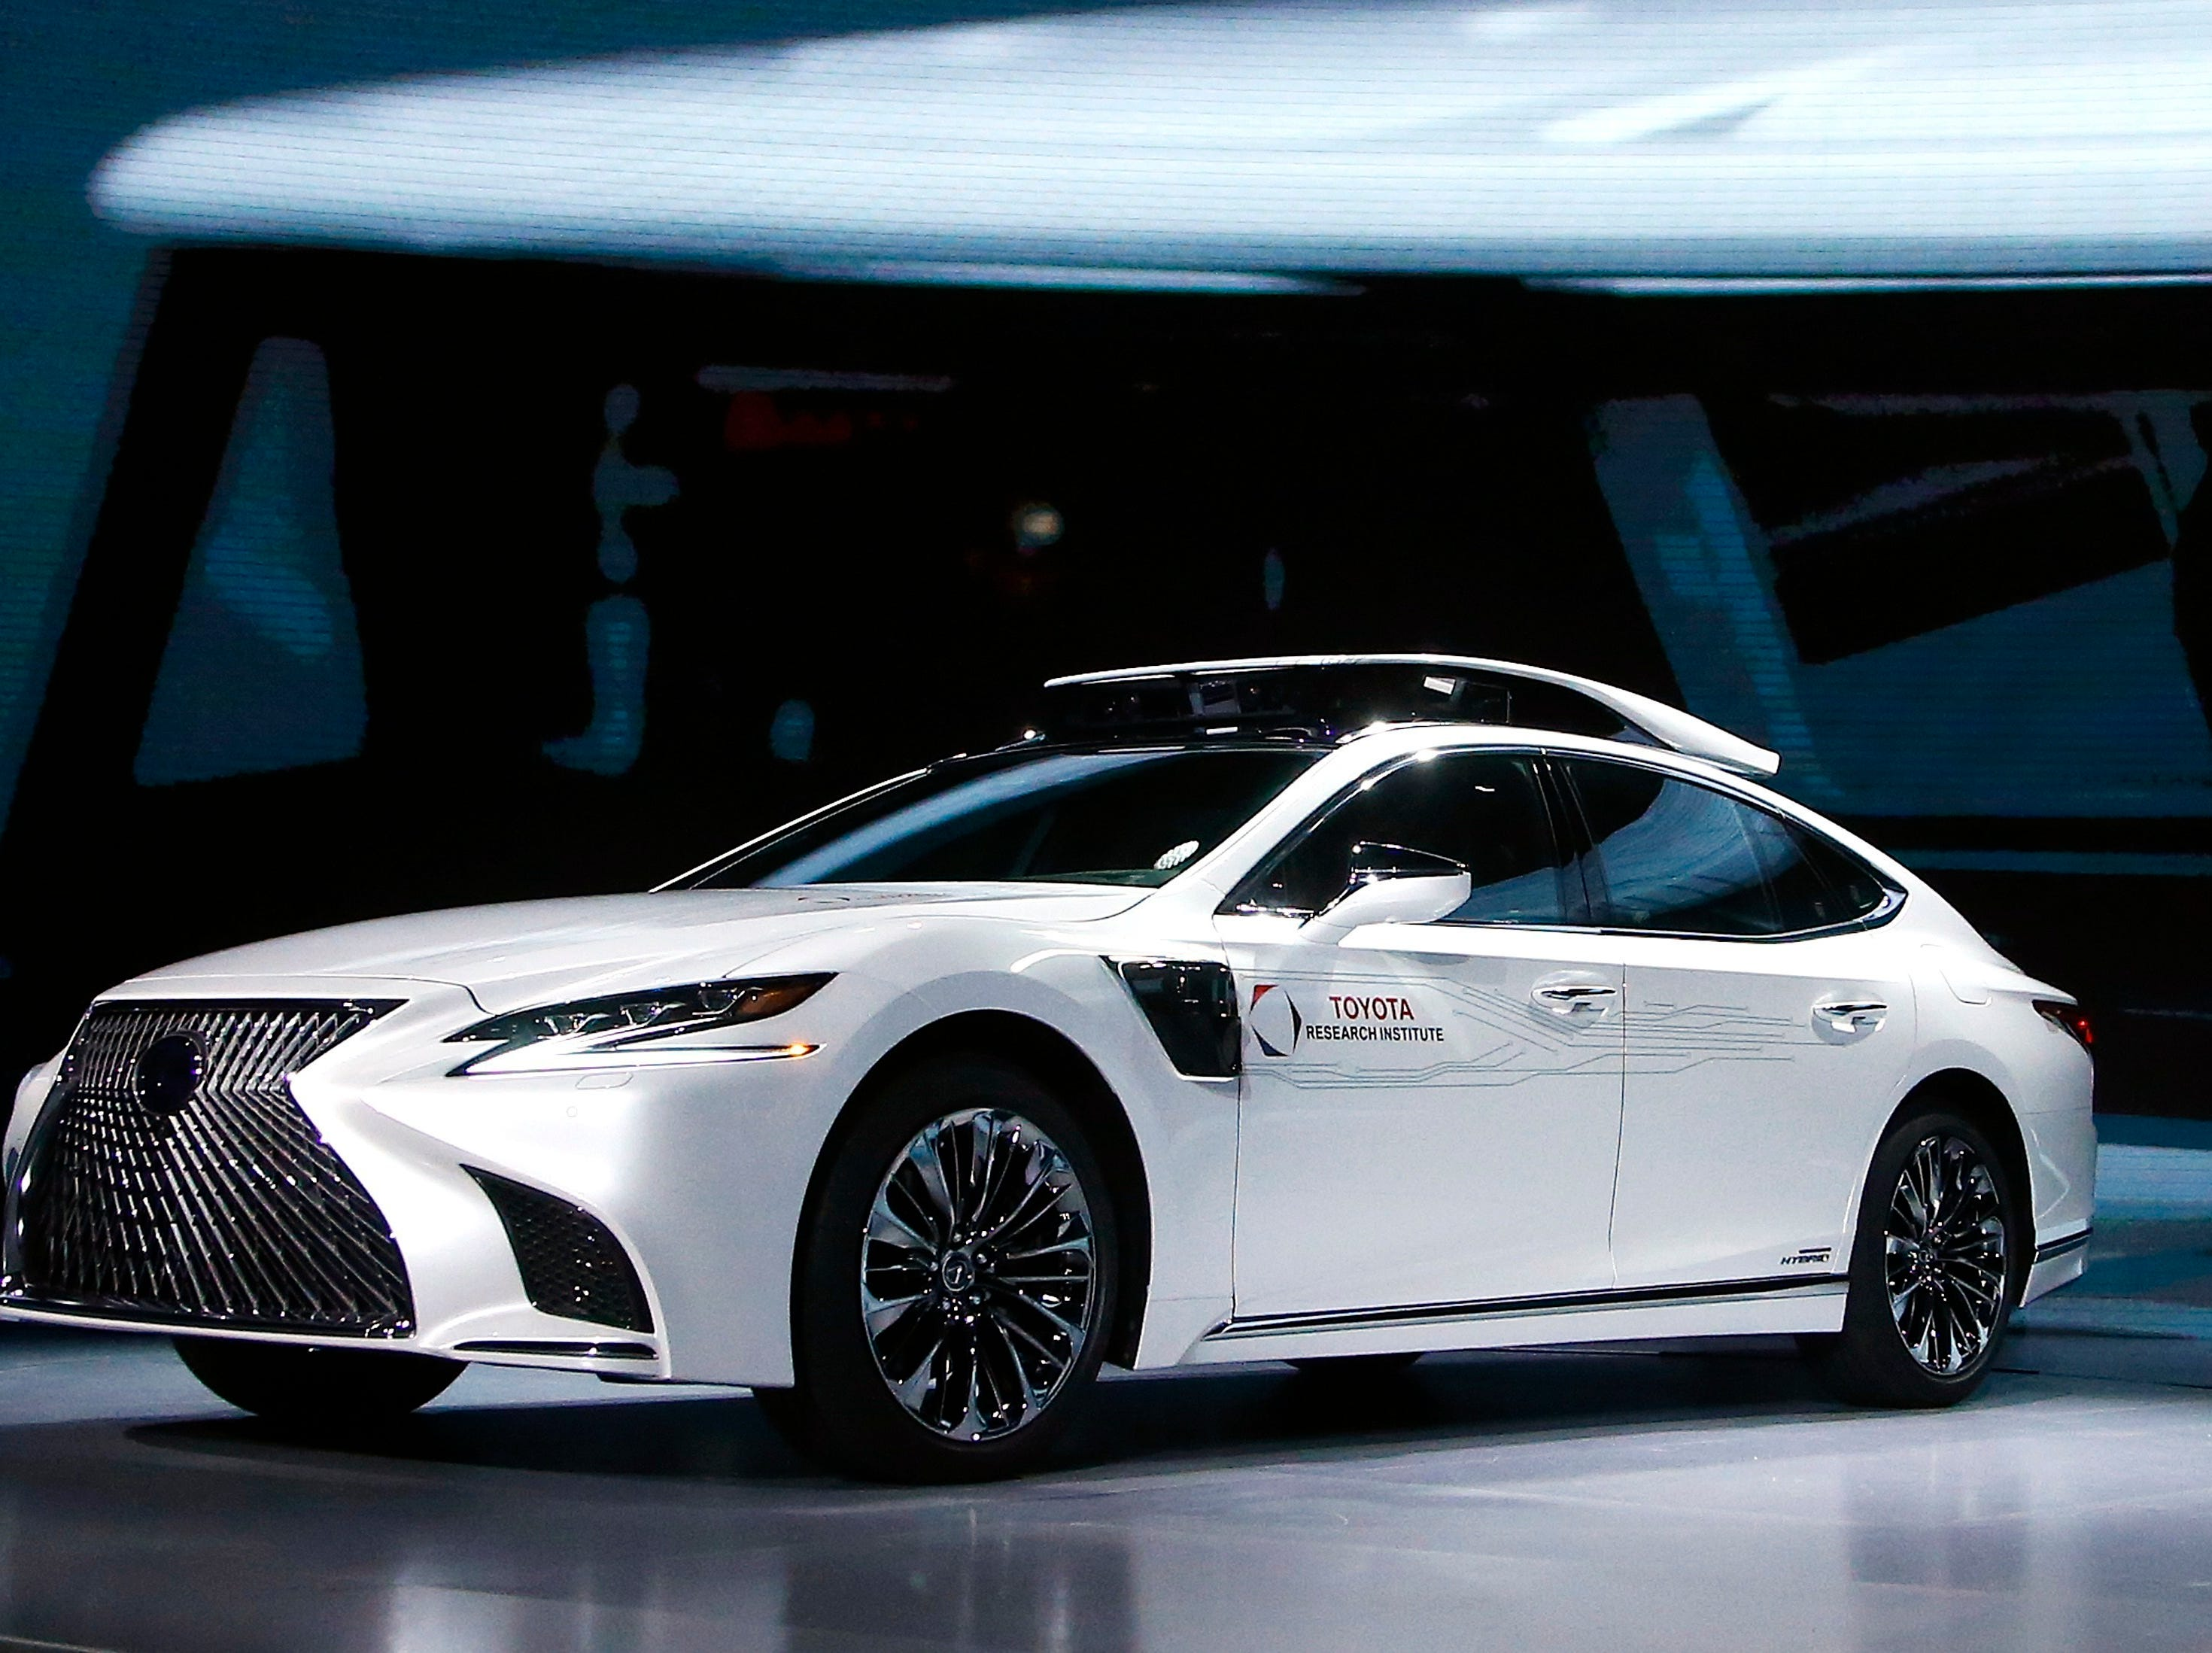 Toyota Research Institute, shows off Toyota's latest autonomous-driving test vehicle, called P4, based on the new-generation Lexus LS500h hybrid luxury sedan, with a roof-mounted assembly with cameras and sensors, and sensors added onto the front fenders, at the Toyota news conference at CES International on Monday, Jan. 7, 2019, in Las Vegas.